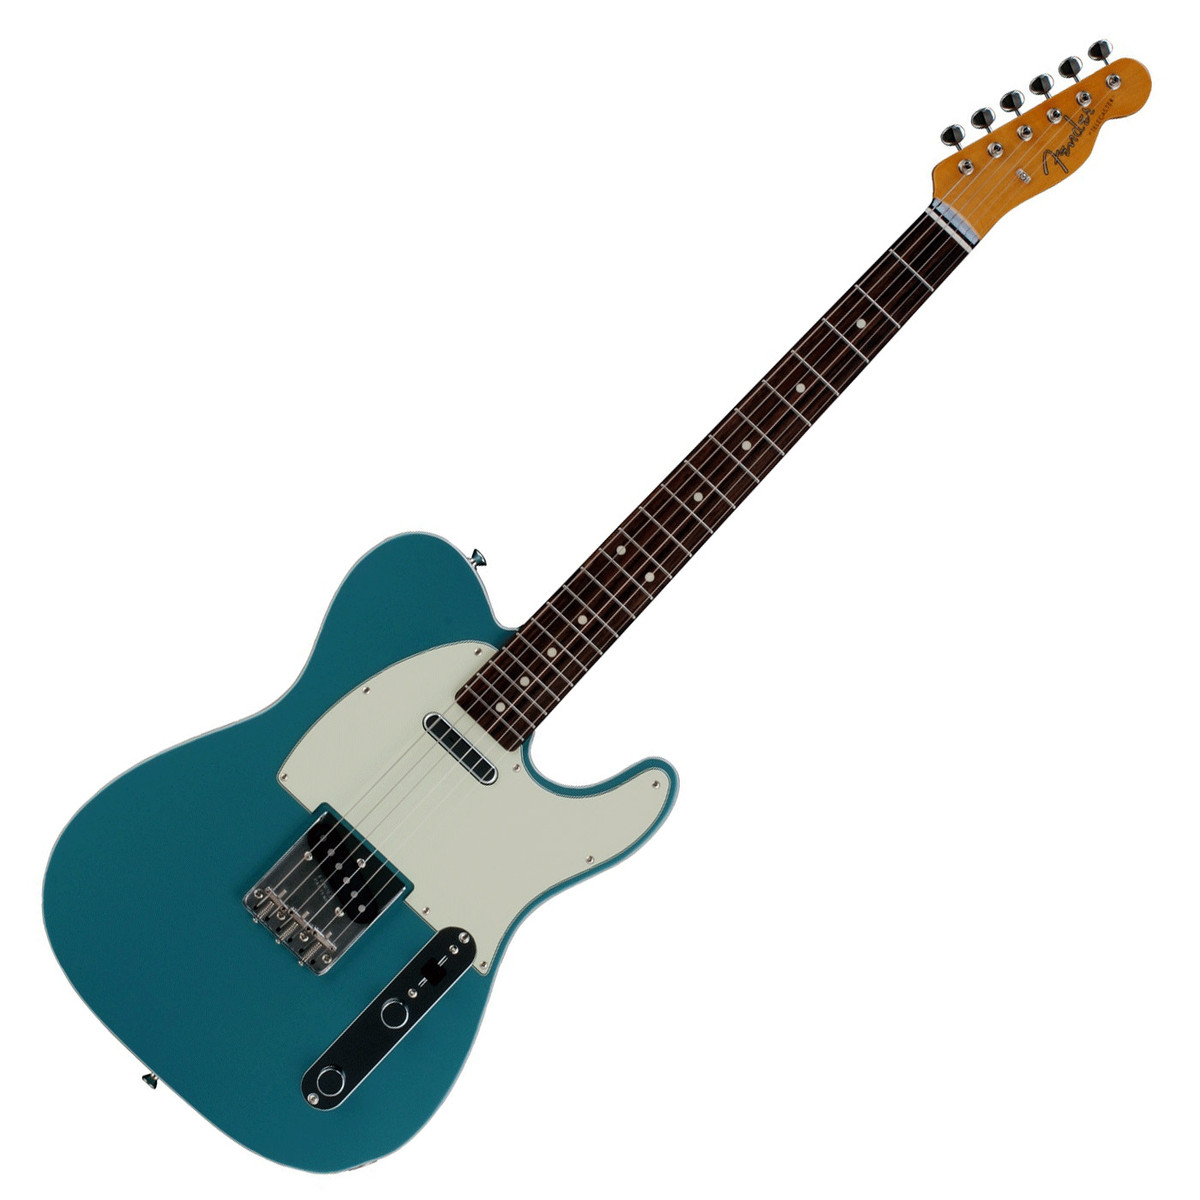 fender fsr 62 telecaster electric guitar ocean turquoise ex demo at gear4music. Black Bedroom Furniture Sets. Home Design Ideas